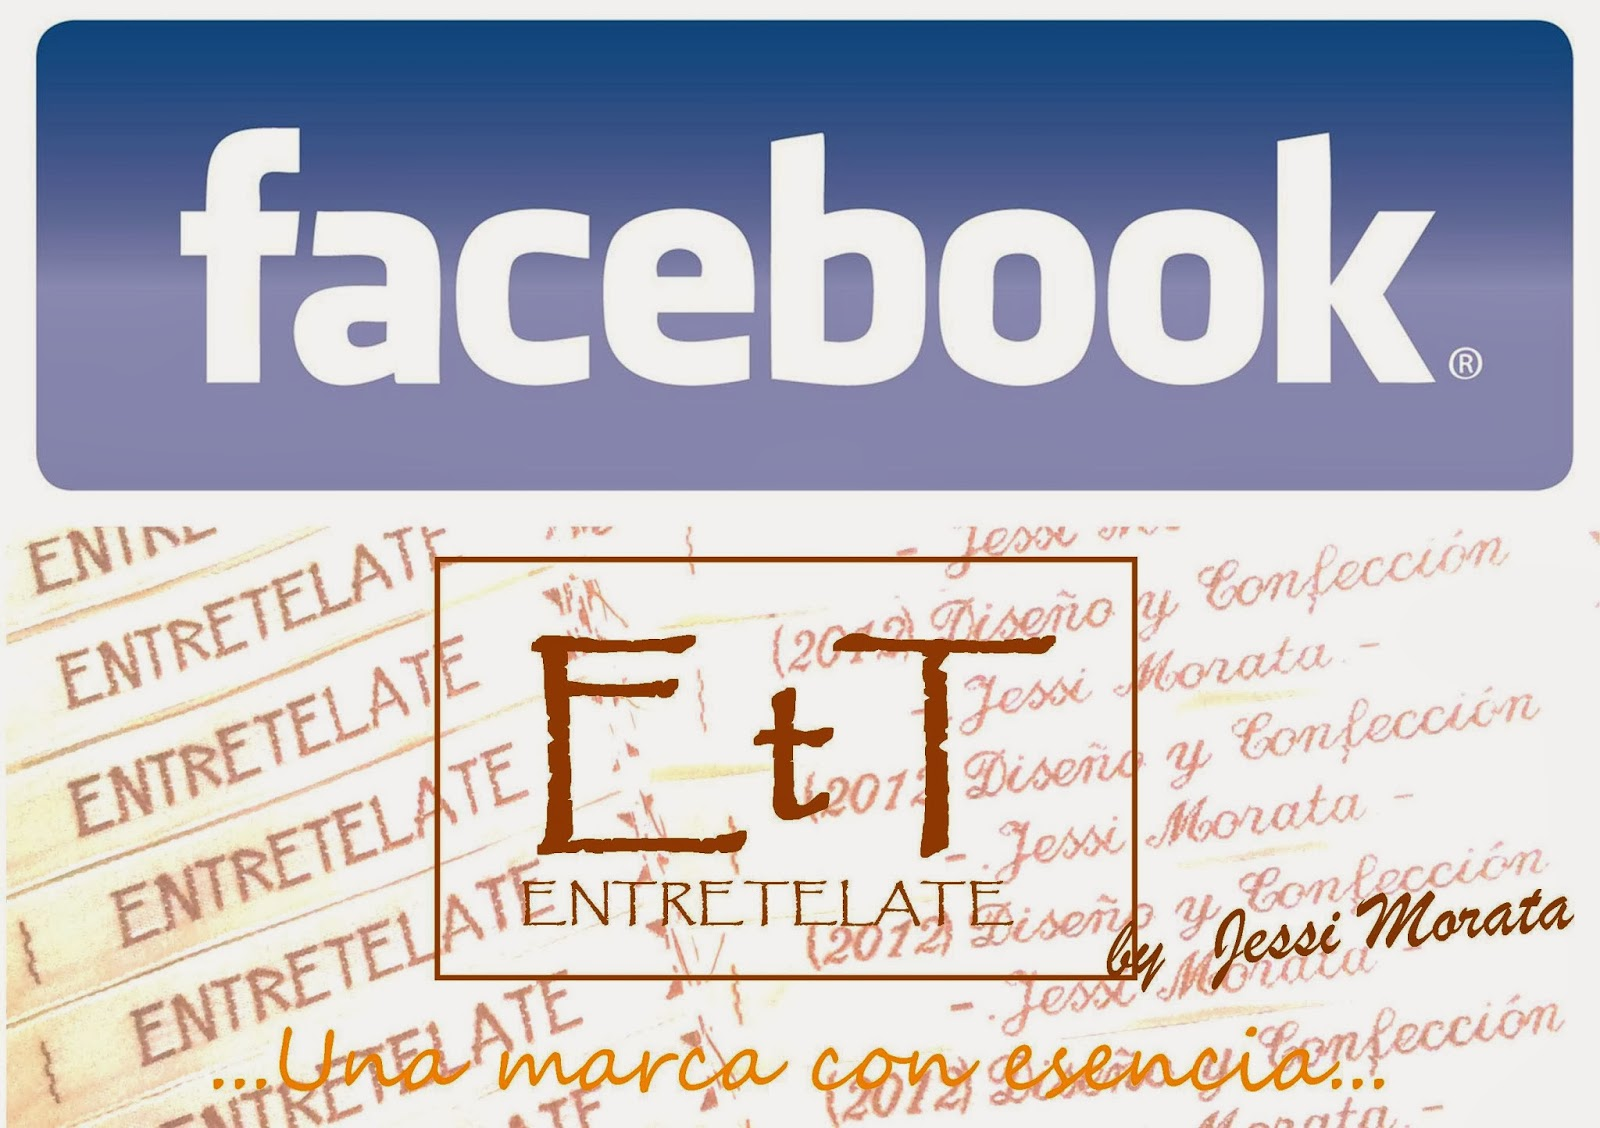 https://www.facebook.com/entretelatejessimorata?notif_t=page_new_likes